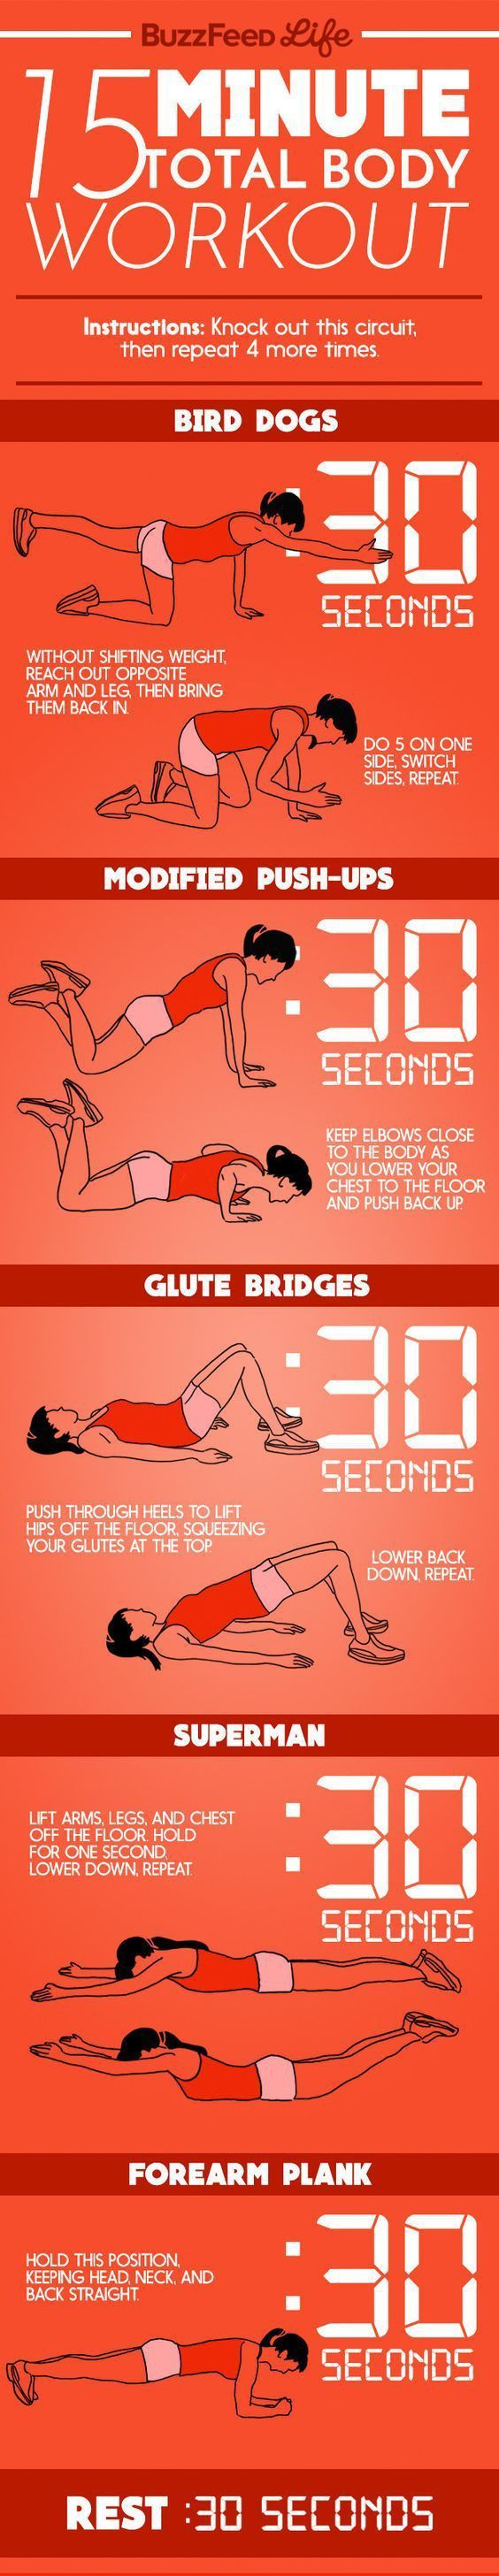 15 Minute Total Body Workout Source: Buzzfeed They say to exercise 30…